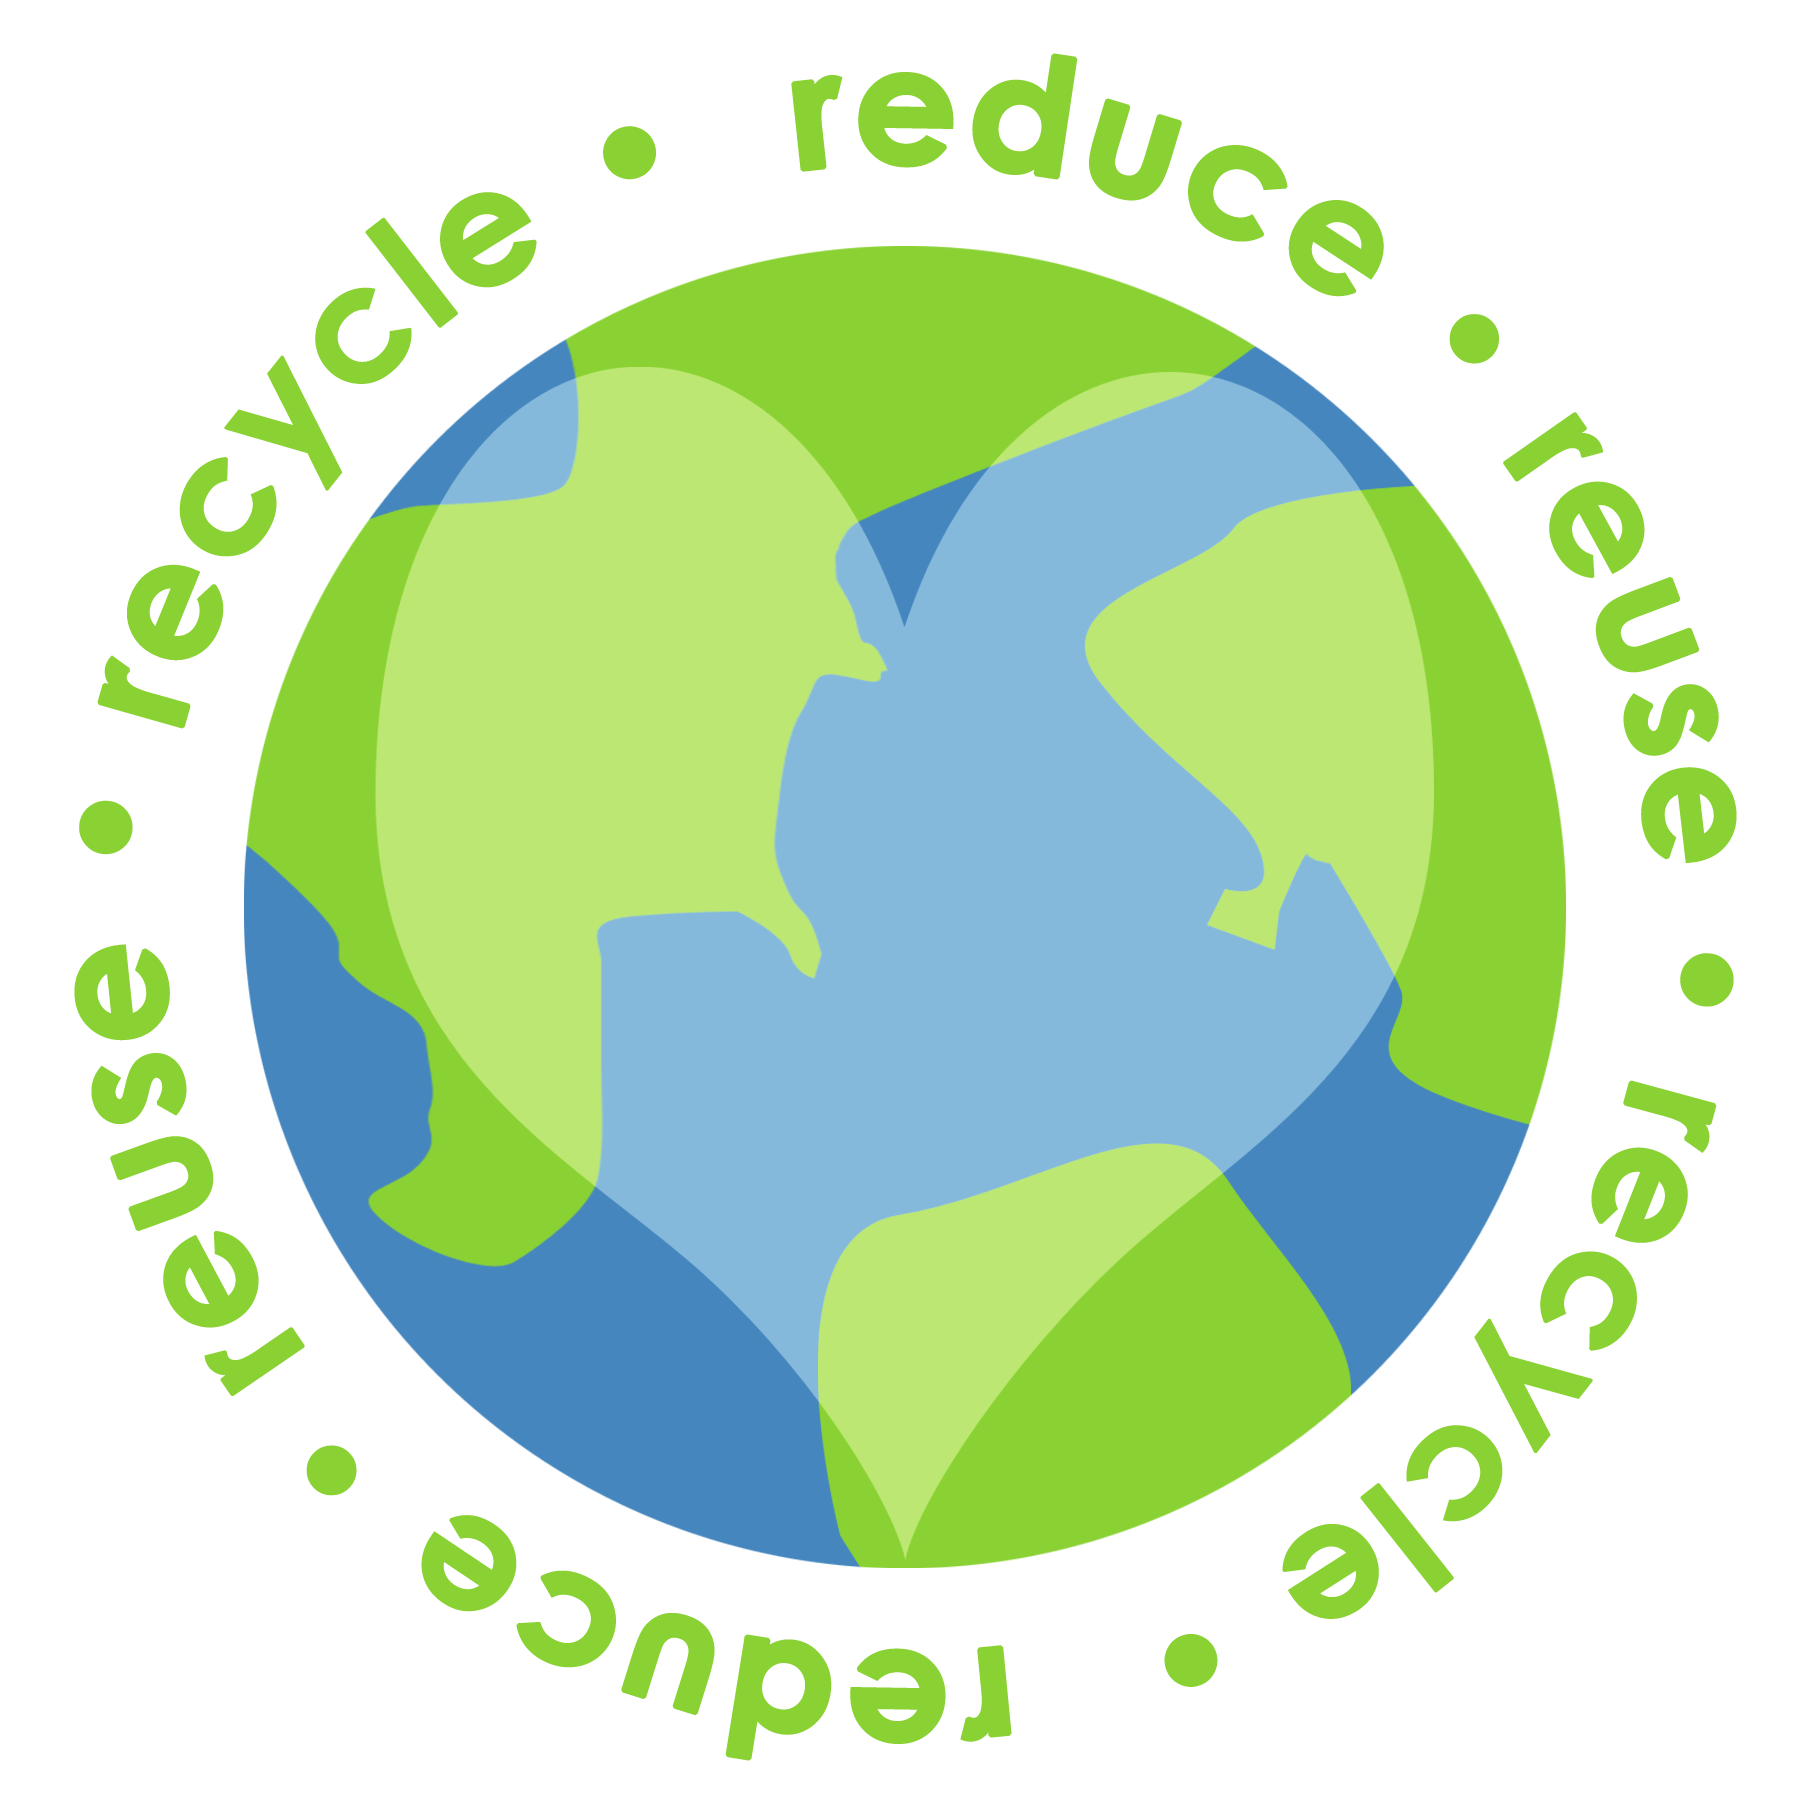 Clipart earth recycling. Reduce reuse recycle liveconsciously